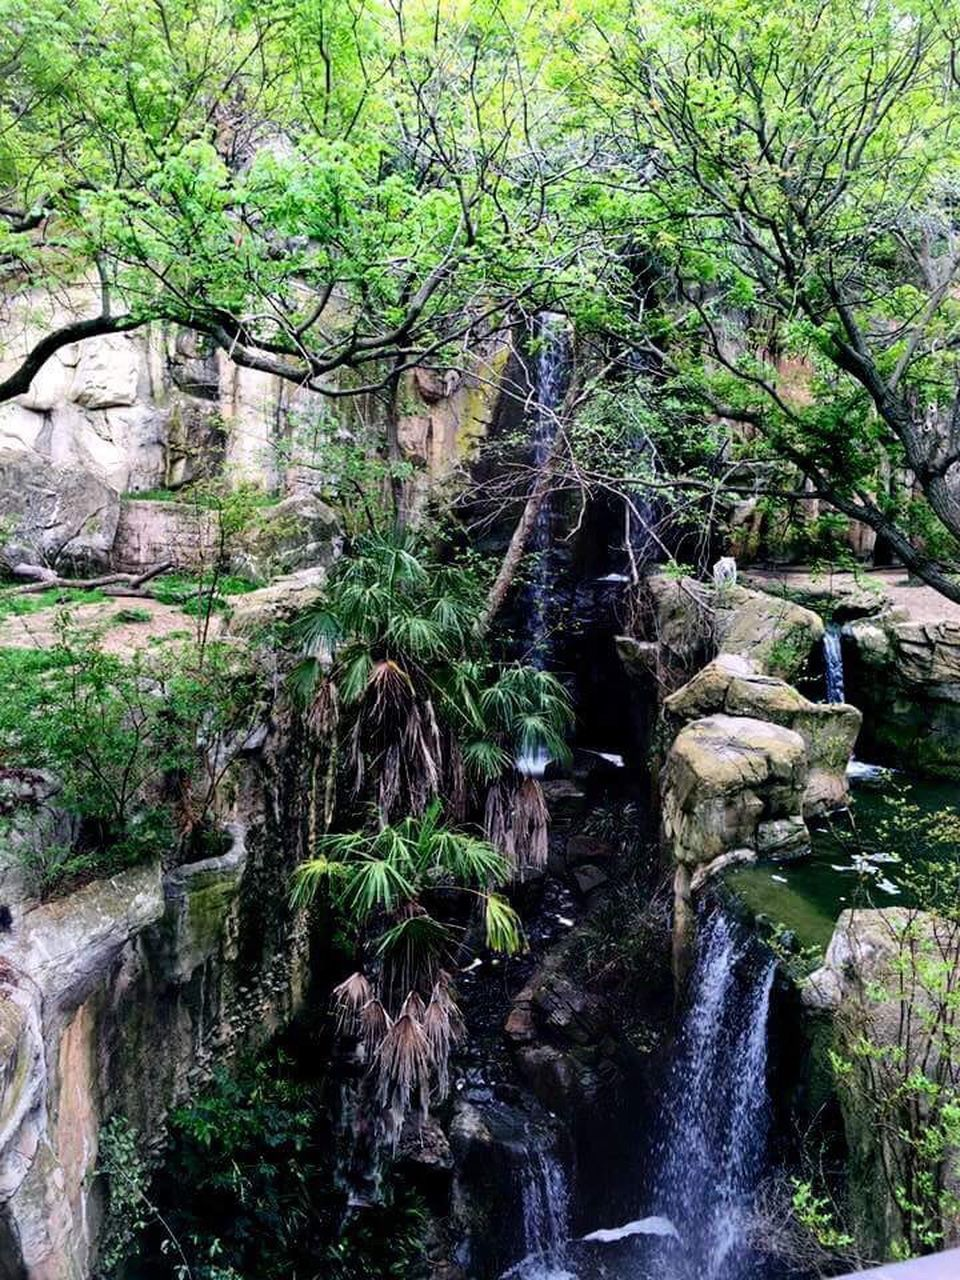 waterfall, tree, beauty in nature, nature, scenics, flowing water, forest, rock - object, tranquil scene, tranquility, water, idyllic, rock formation, no people, outdoors, day, growth, green color, non-urban scene, river, moss, lush foliage, travel destinations, motion, landscape, plant, branch, sky